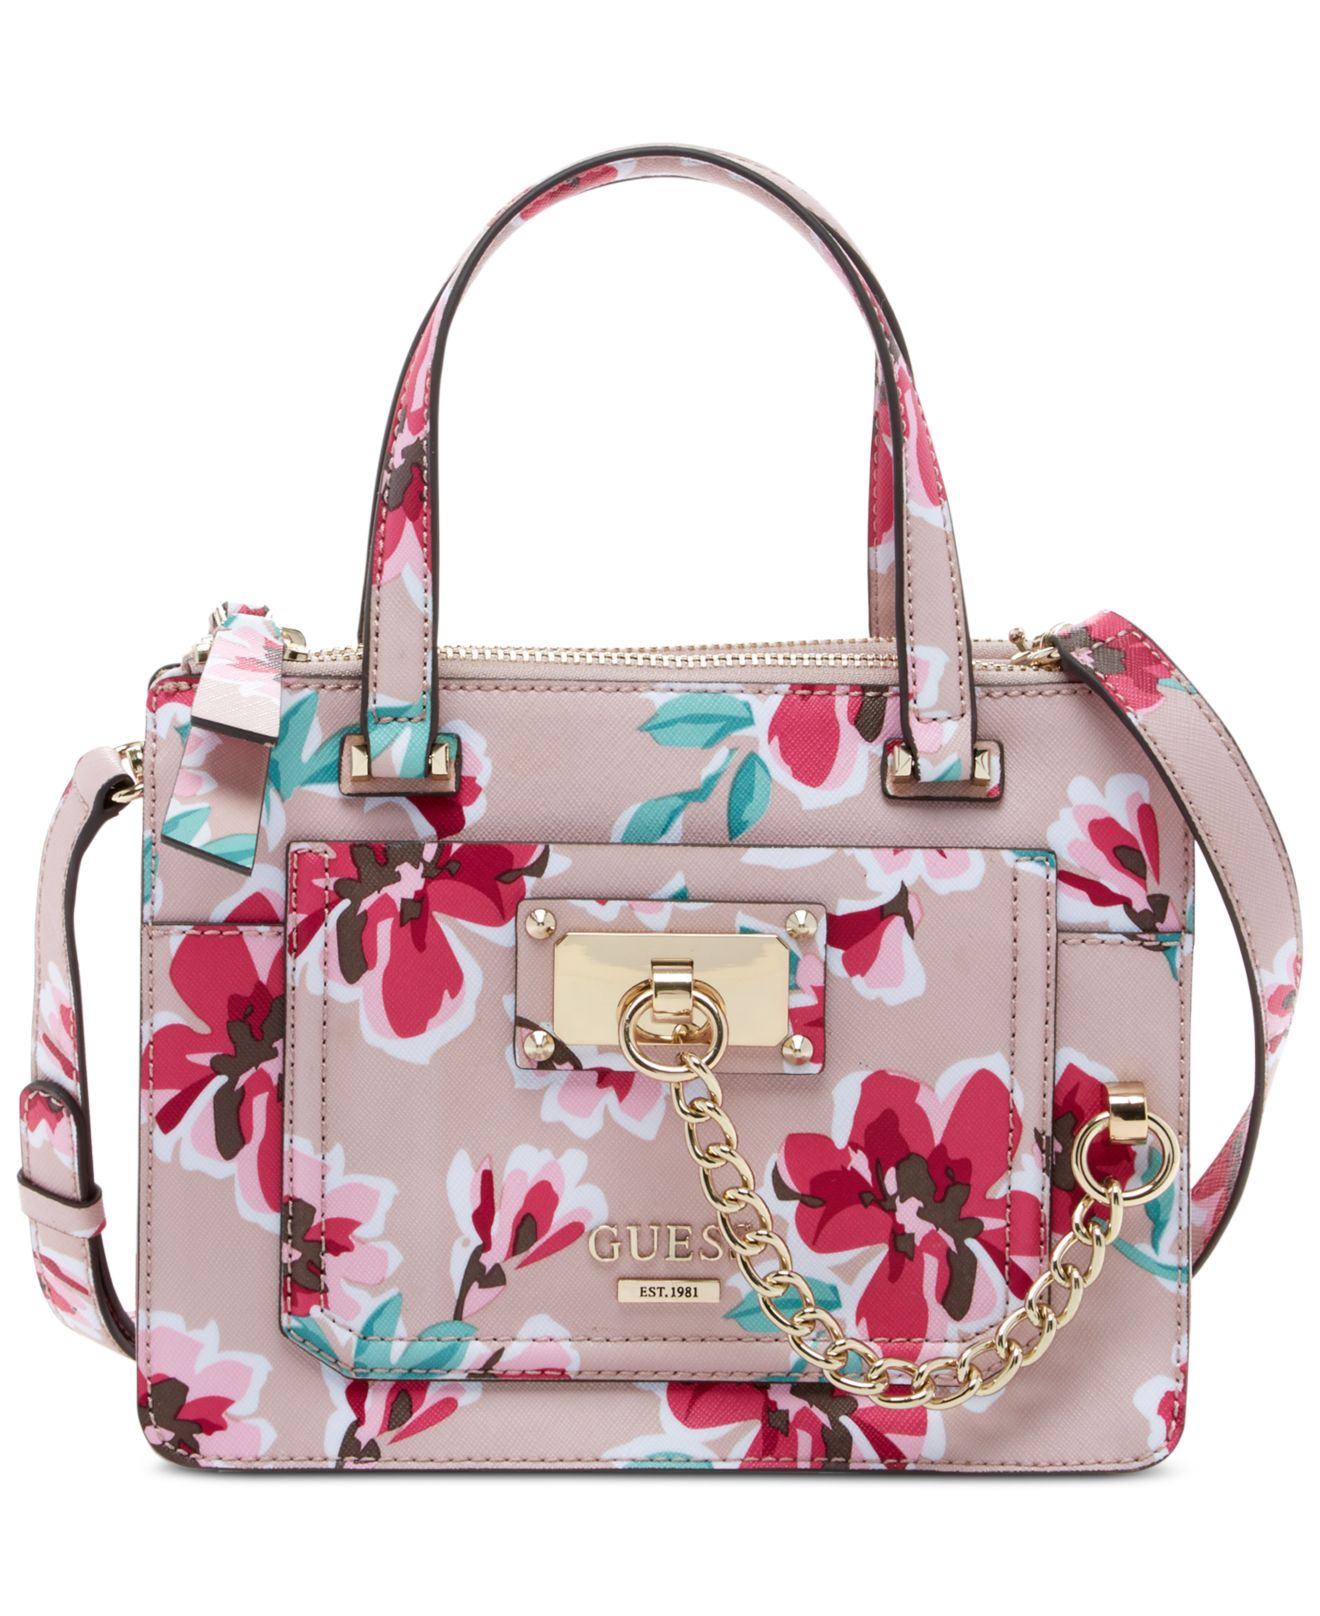 82a6775a2f6a Lyst - Guess Forget Me Not Little Status Satchel Floral Bag